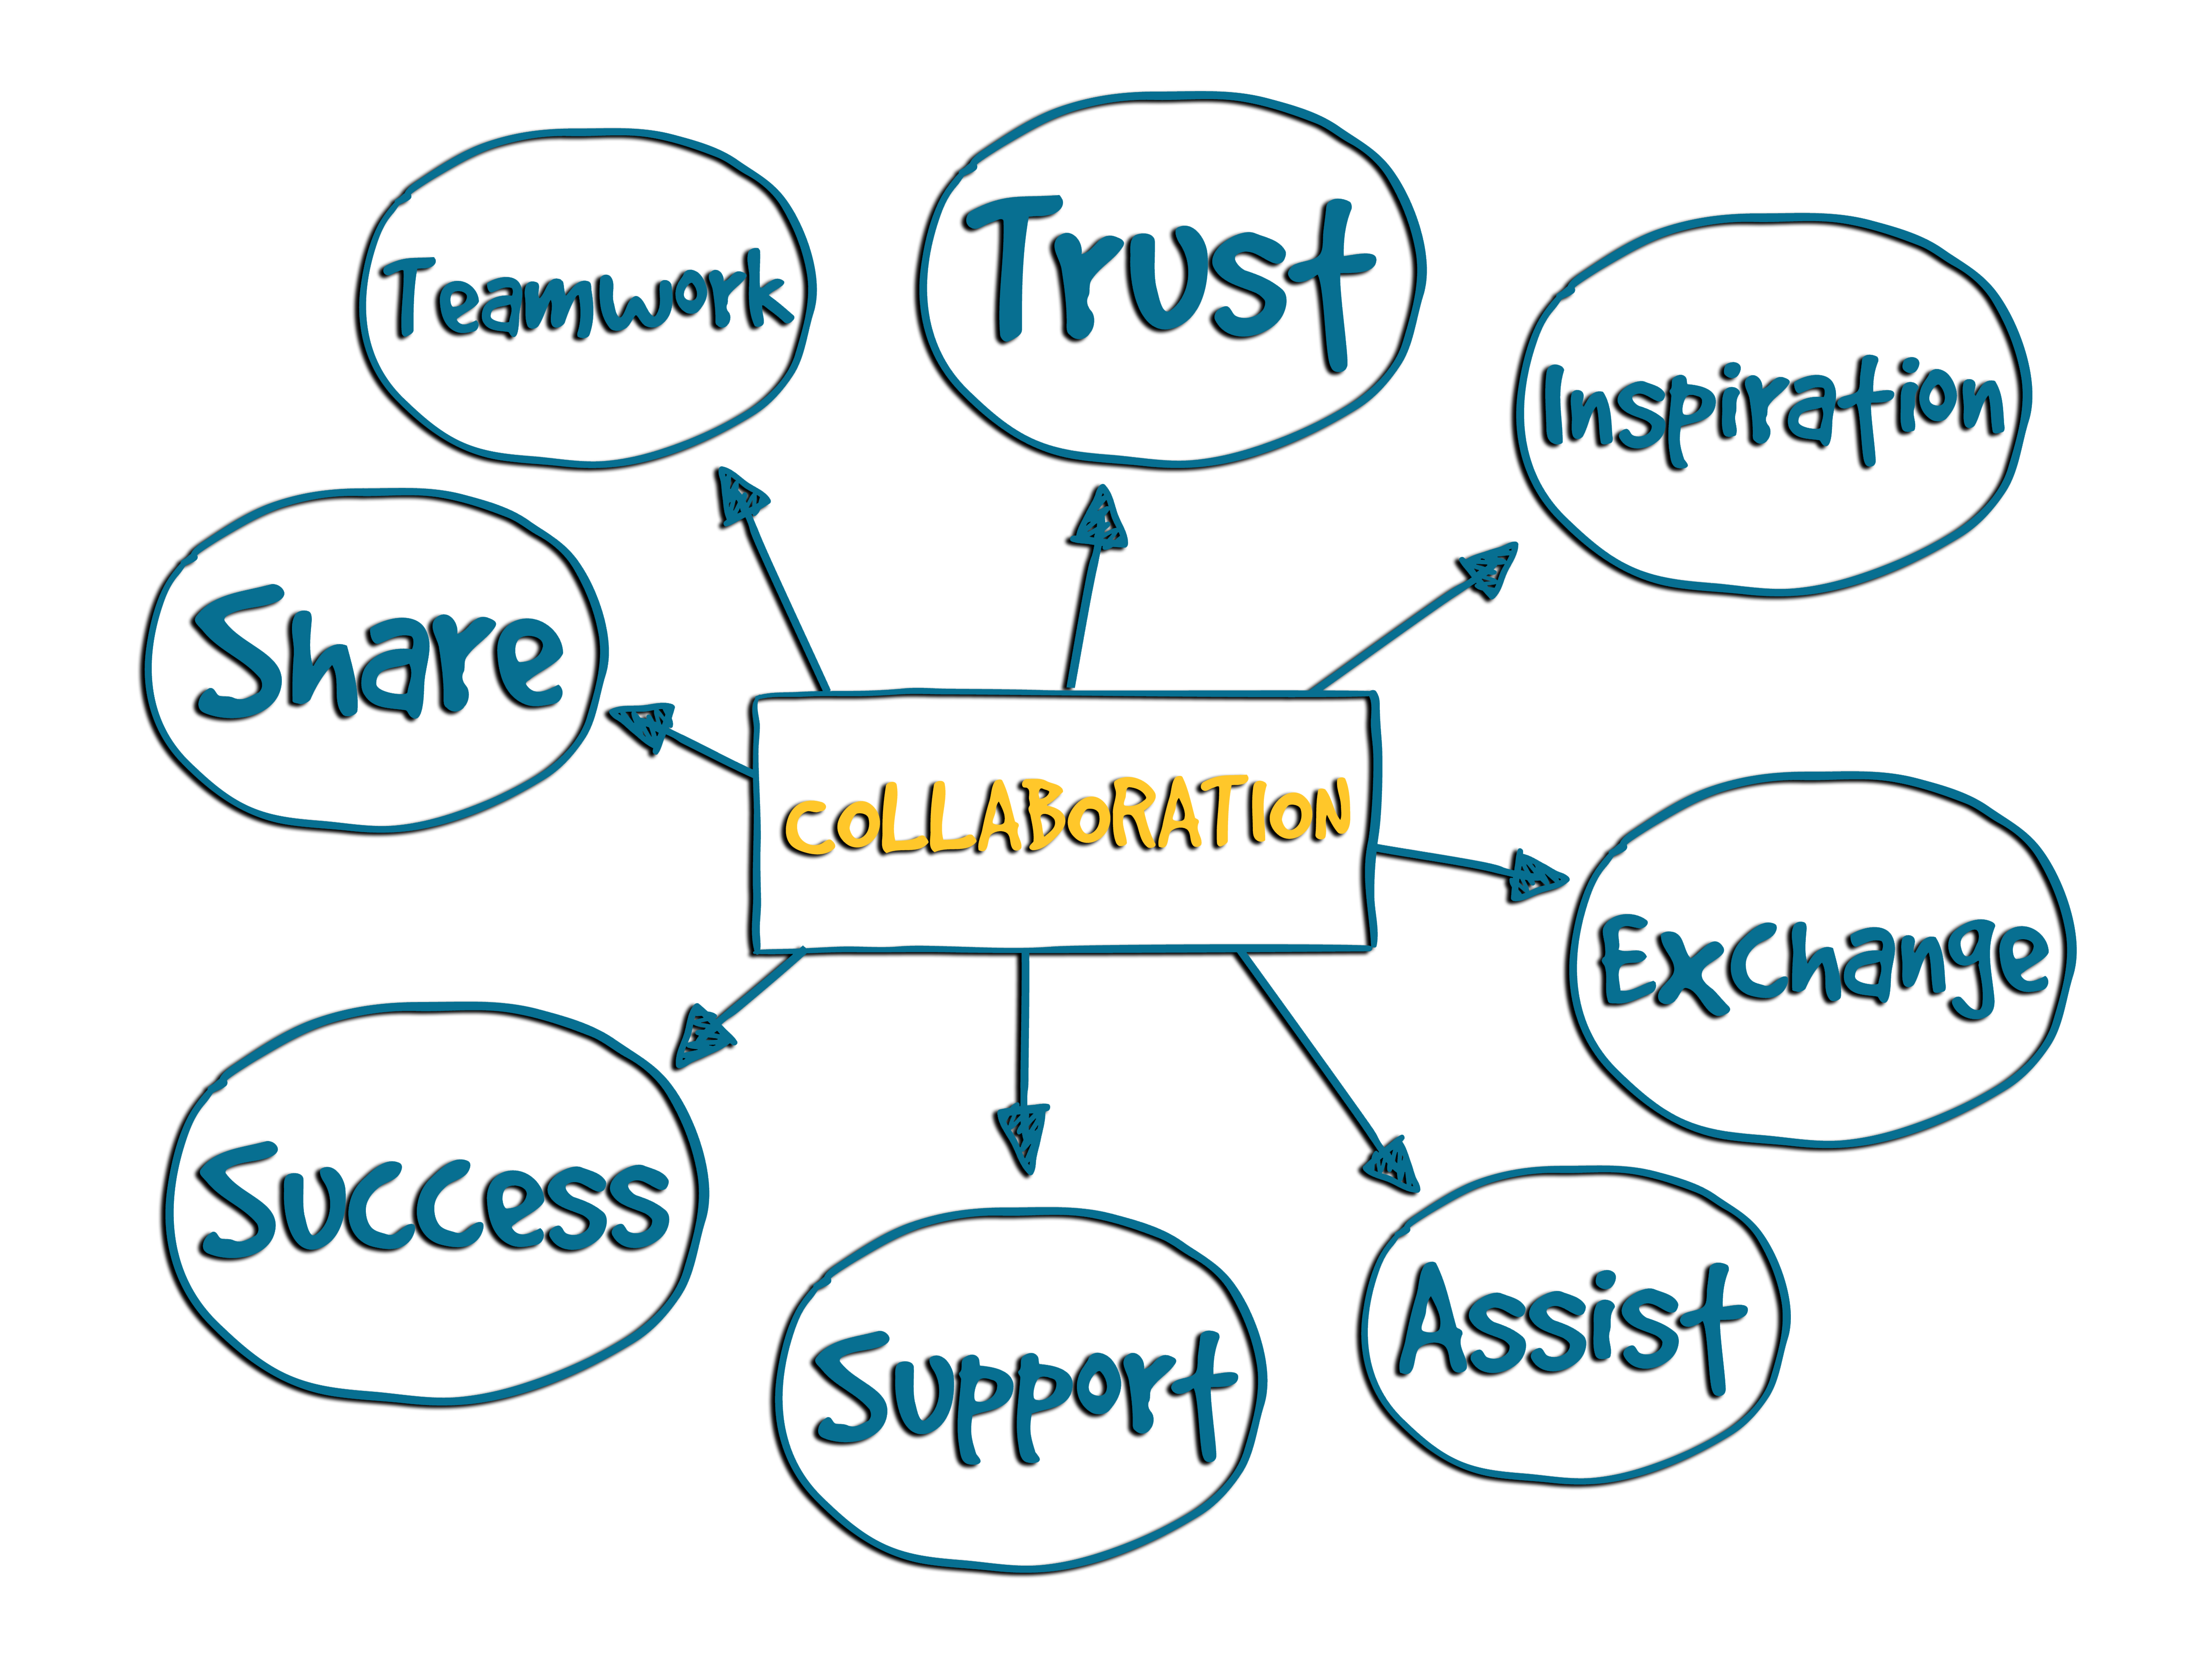 Collaboration: trust, inspiration, exchange, assist, support, success, share, team